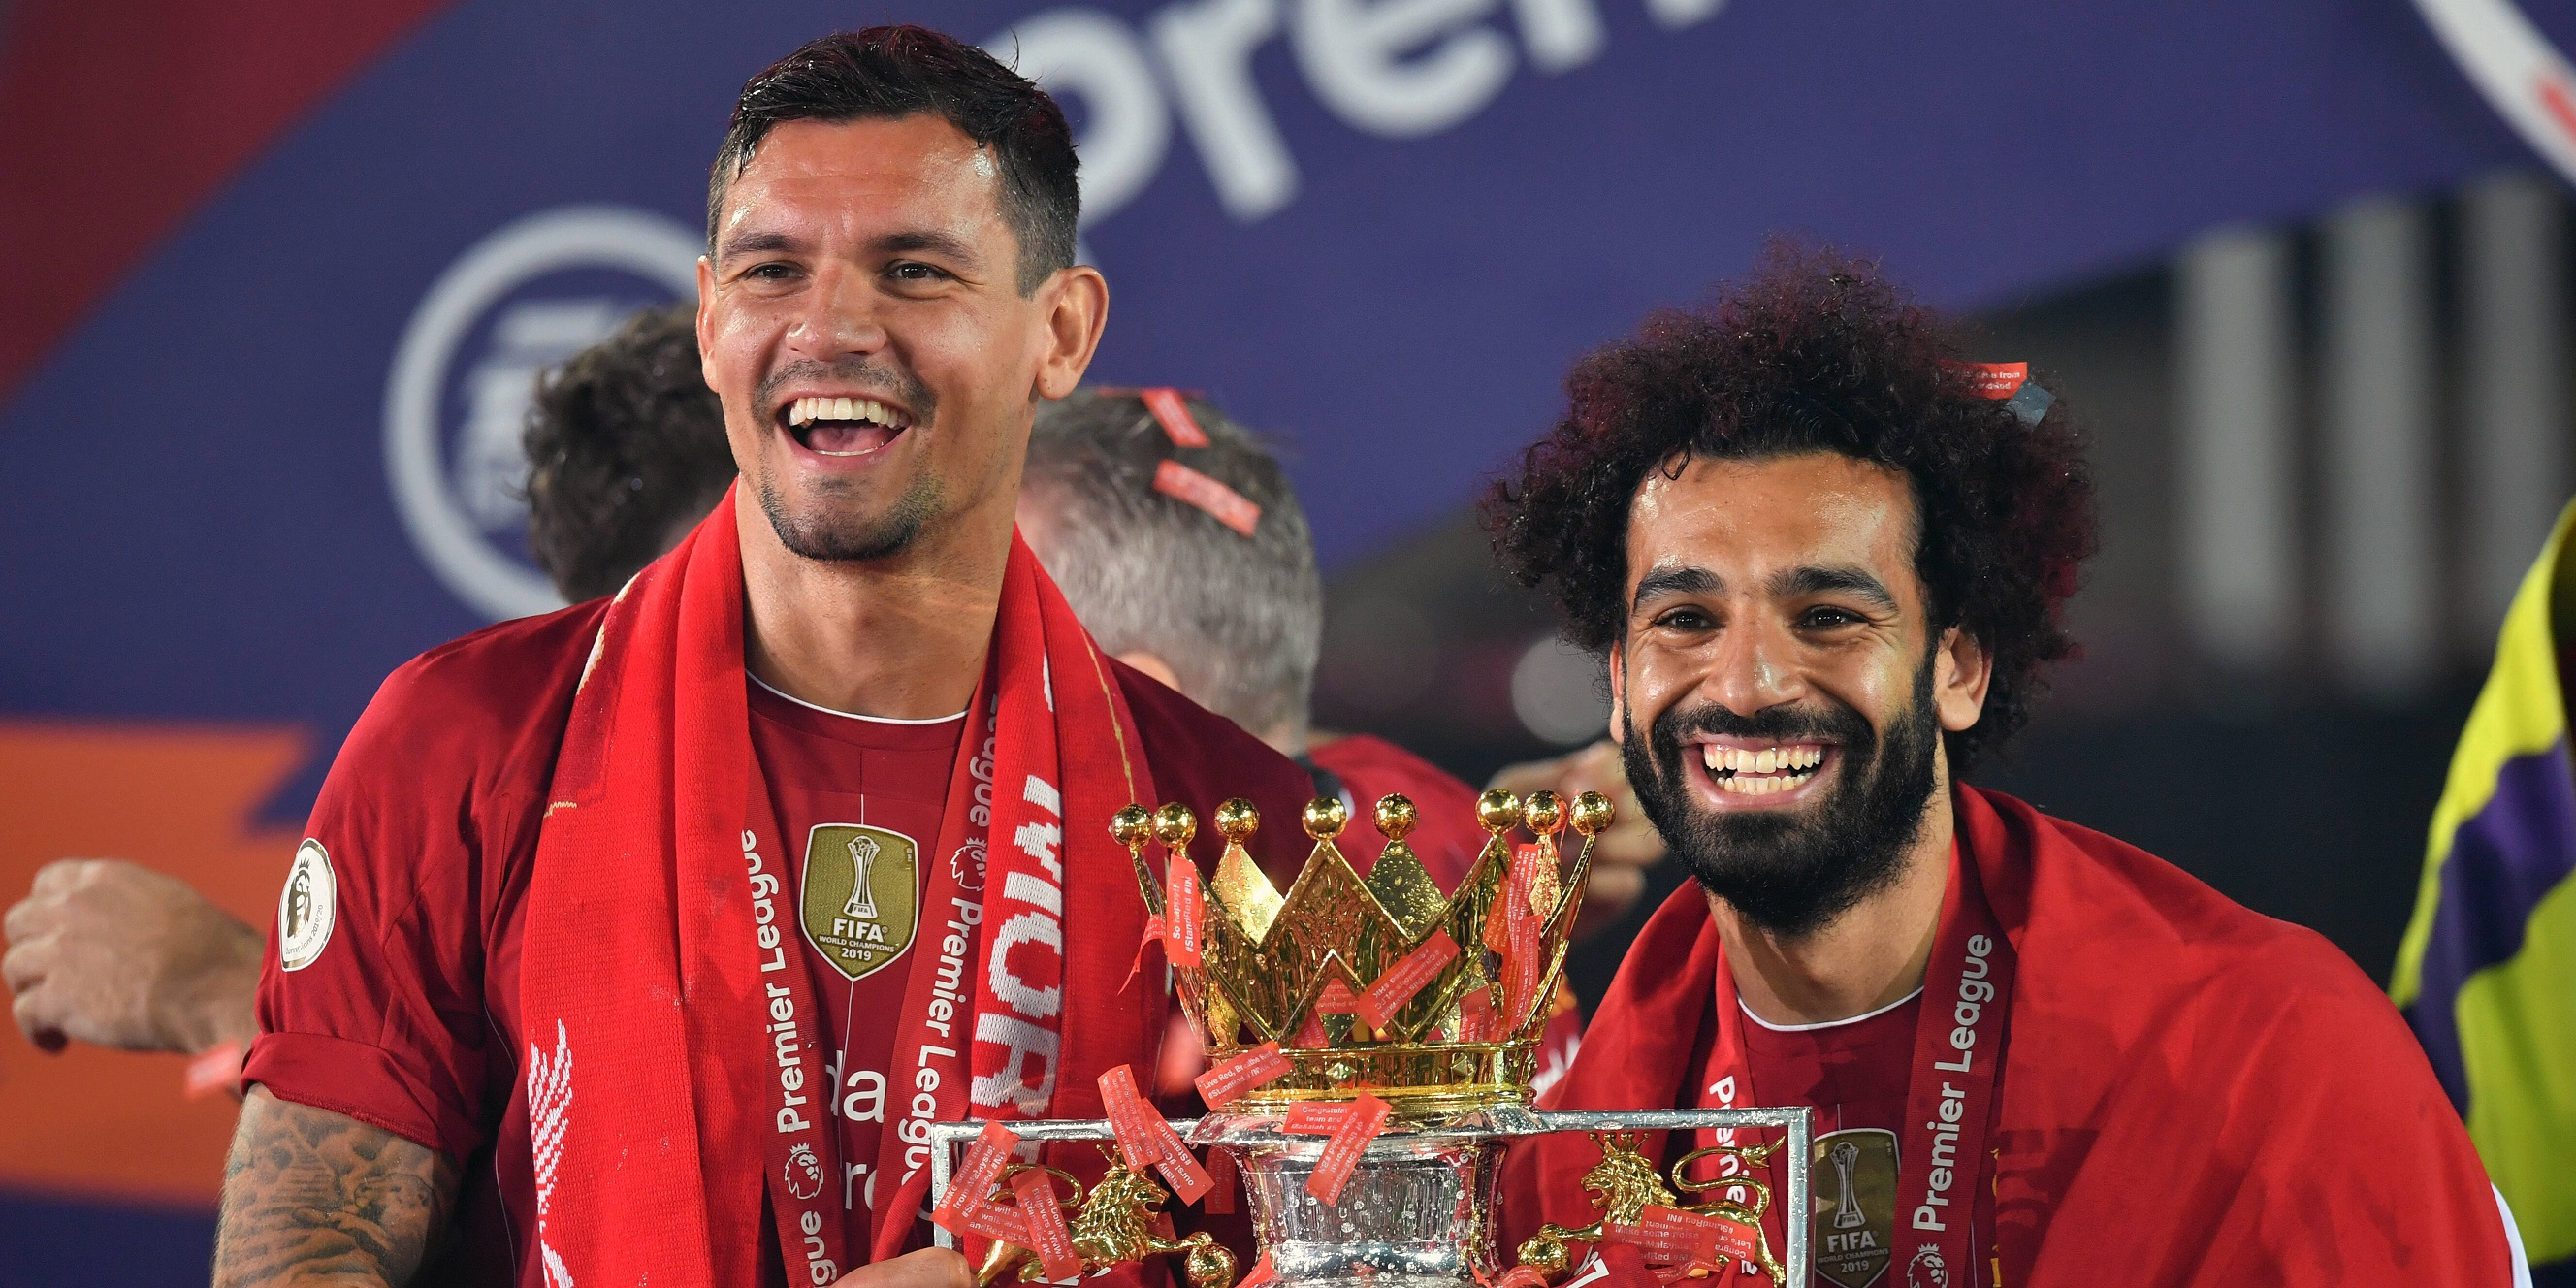 'CR7 or MS?' – Lovren shares text conversation with Salah after Liverpool attacker scores 100th PL goal for Reds